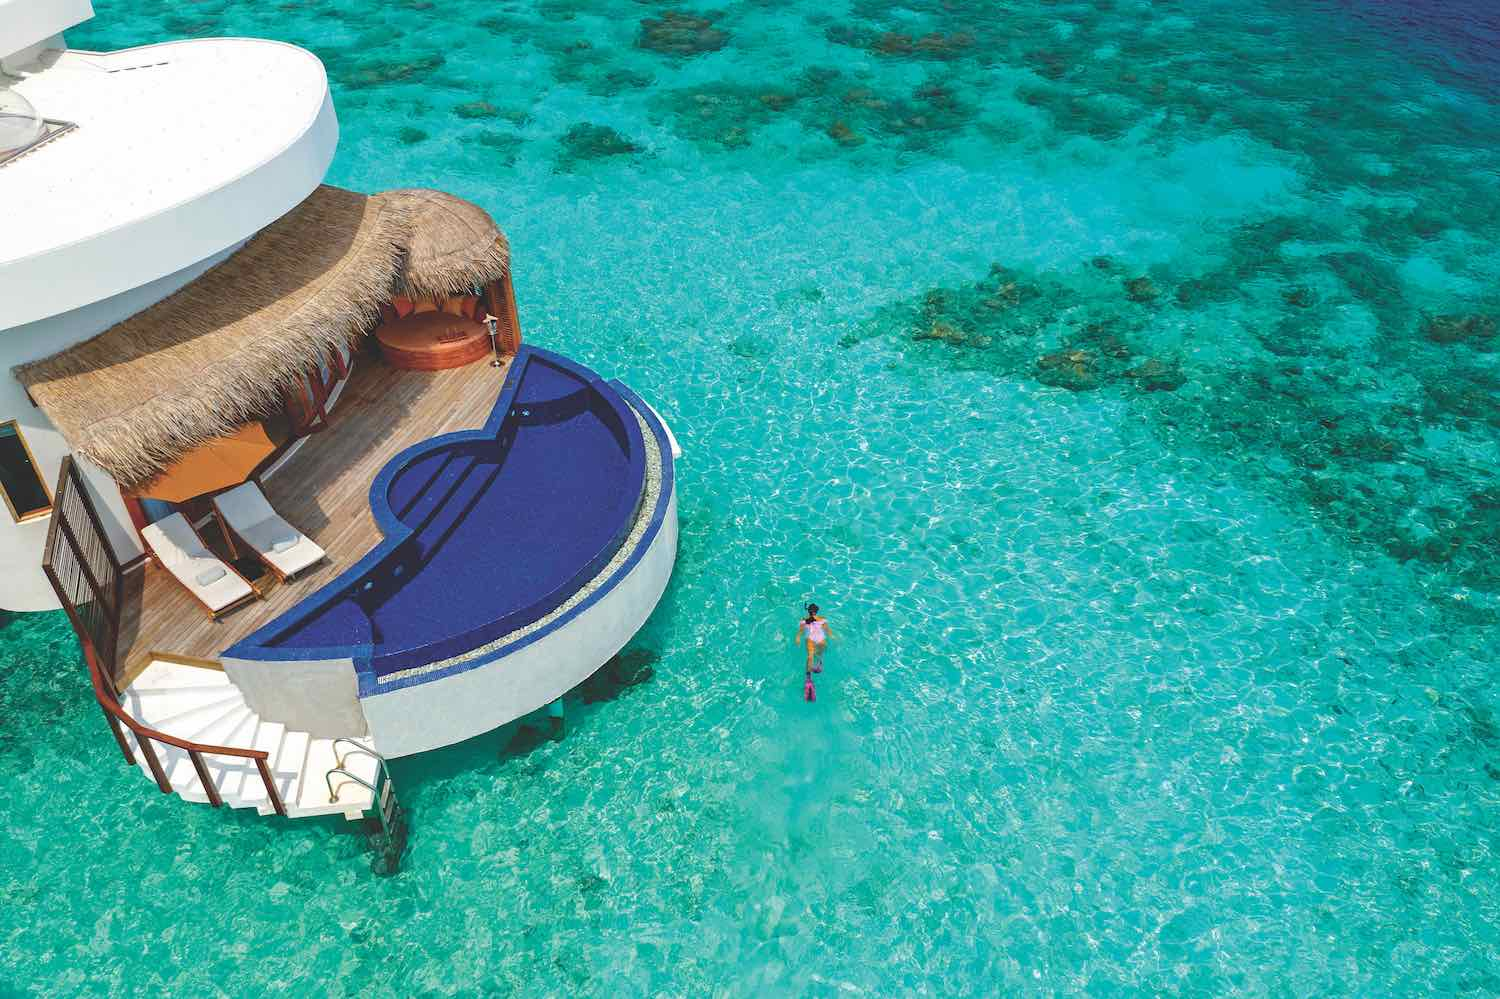 maldives-oblu-select-at-sangeli-honeymoon-water-suite-with-pool-4-holiday-honeymoon-vacation-invite-to-paradise.jpg